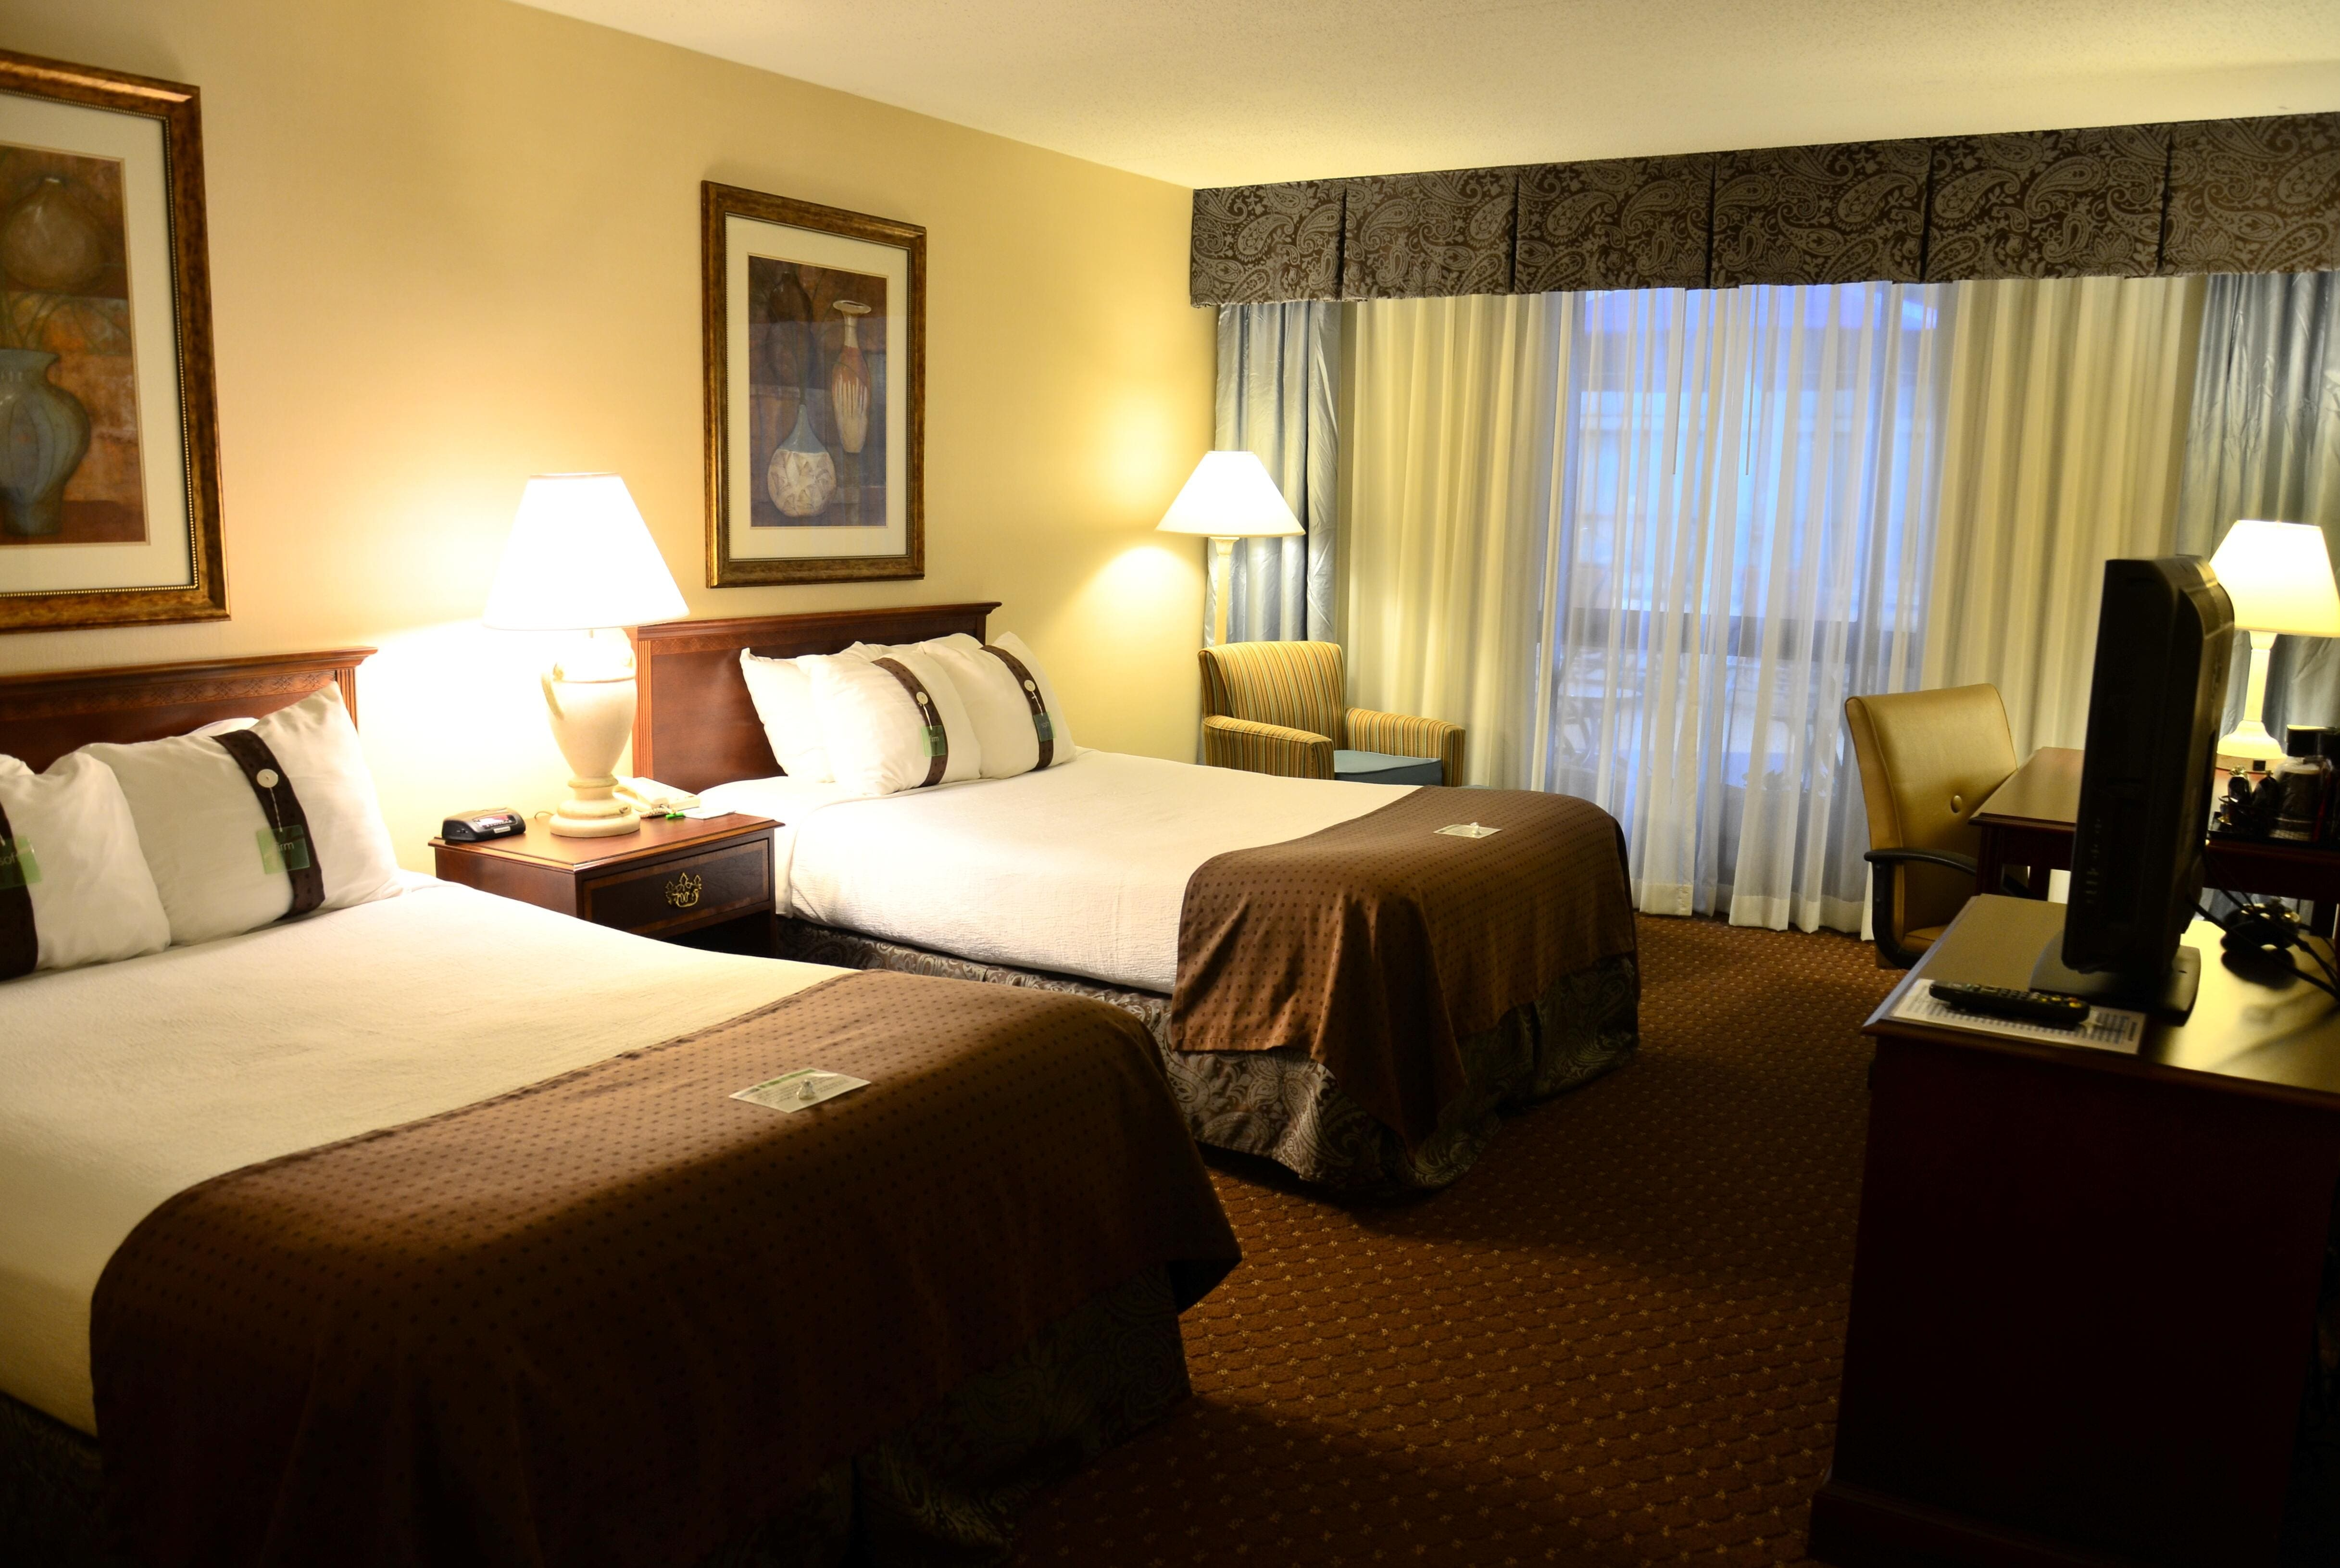 Guest Room At The Ramada Kansas City In Missouri